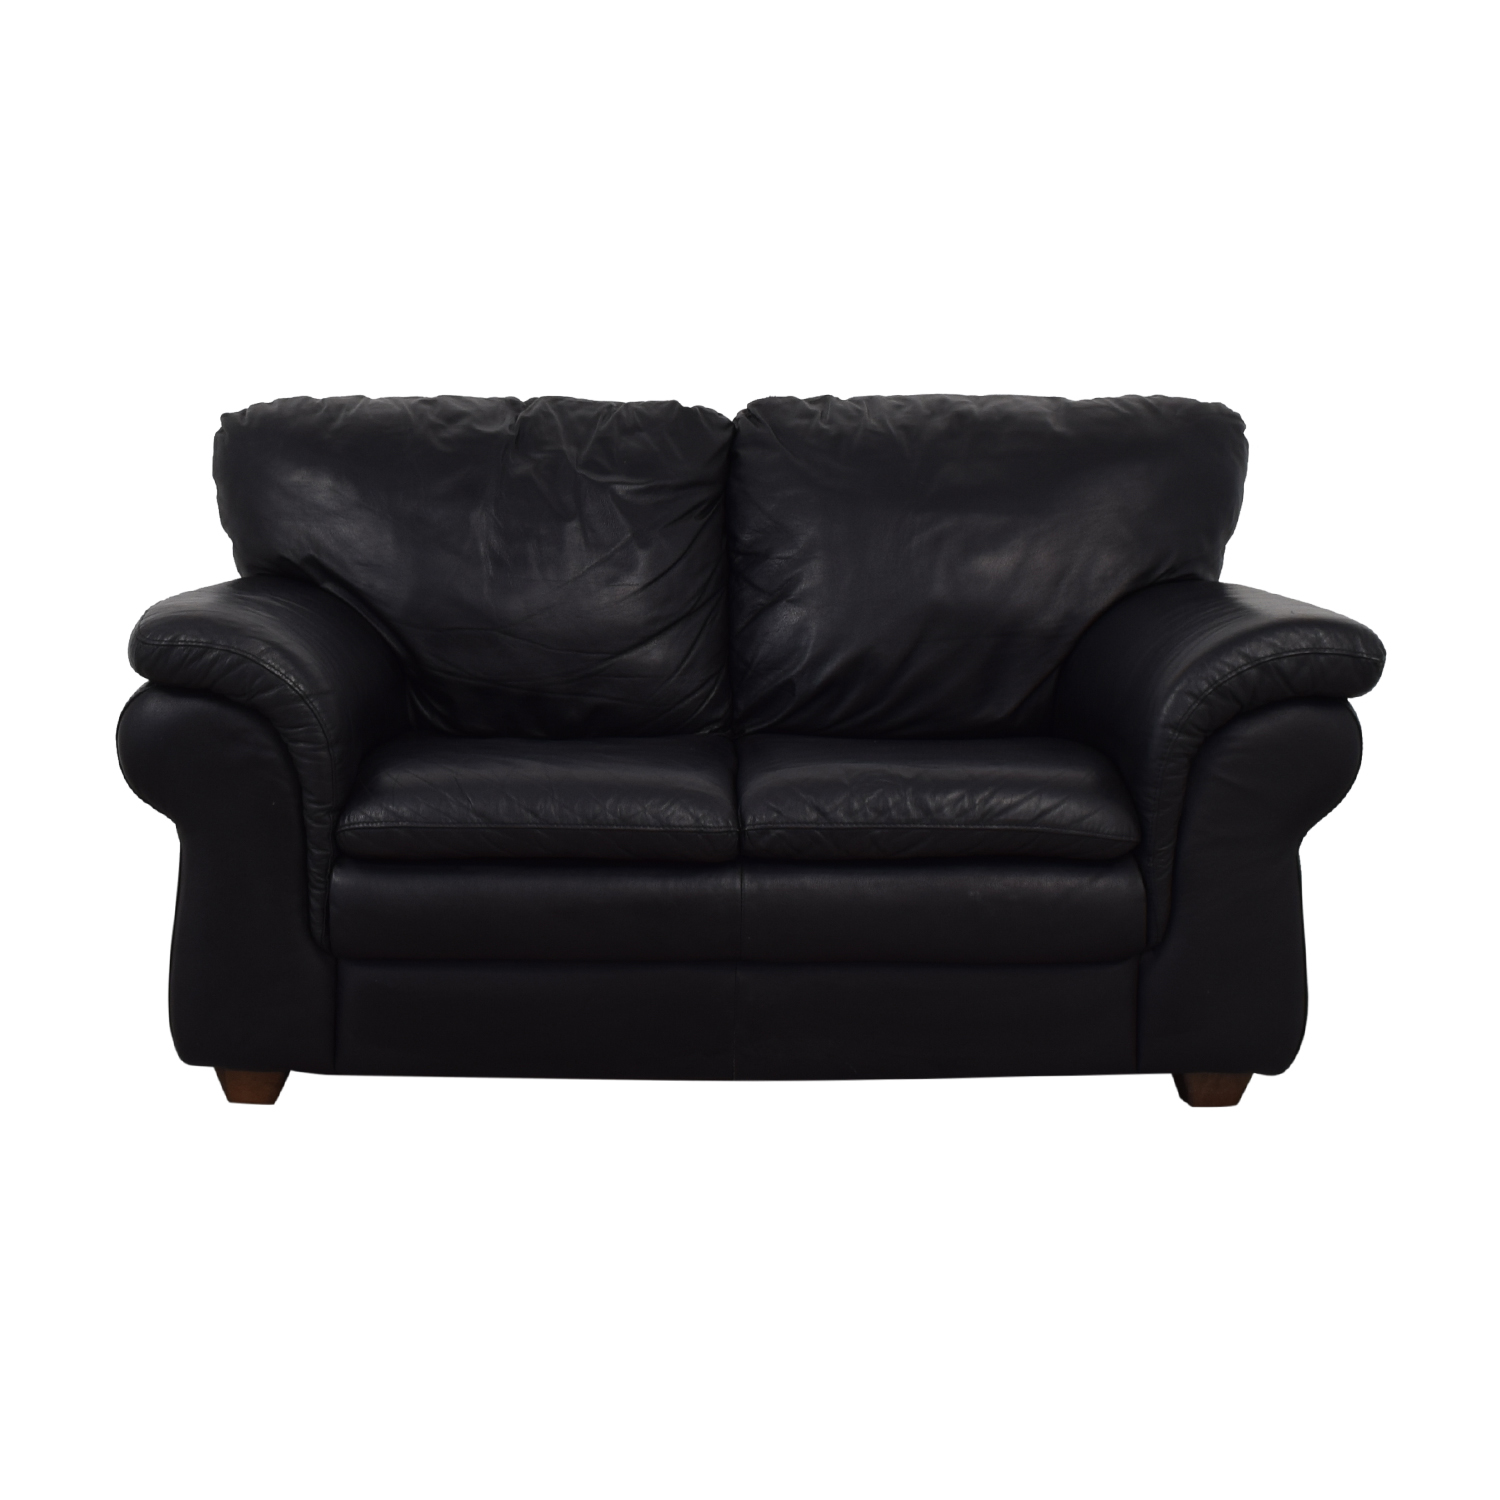 Bloomingdale's Bloomingdale's Black Two-Cushion Loveseat nyc